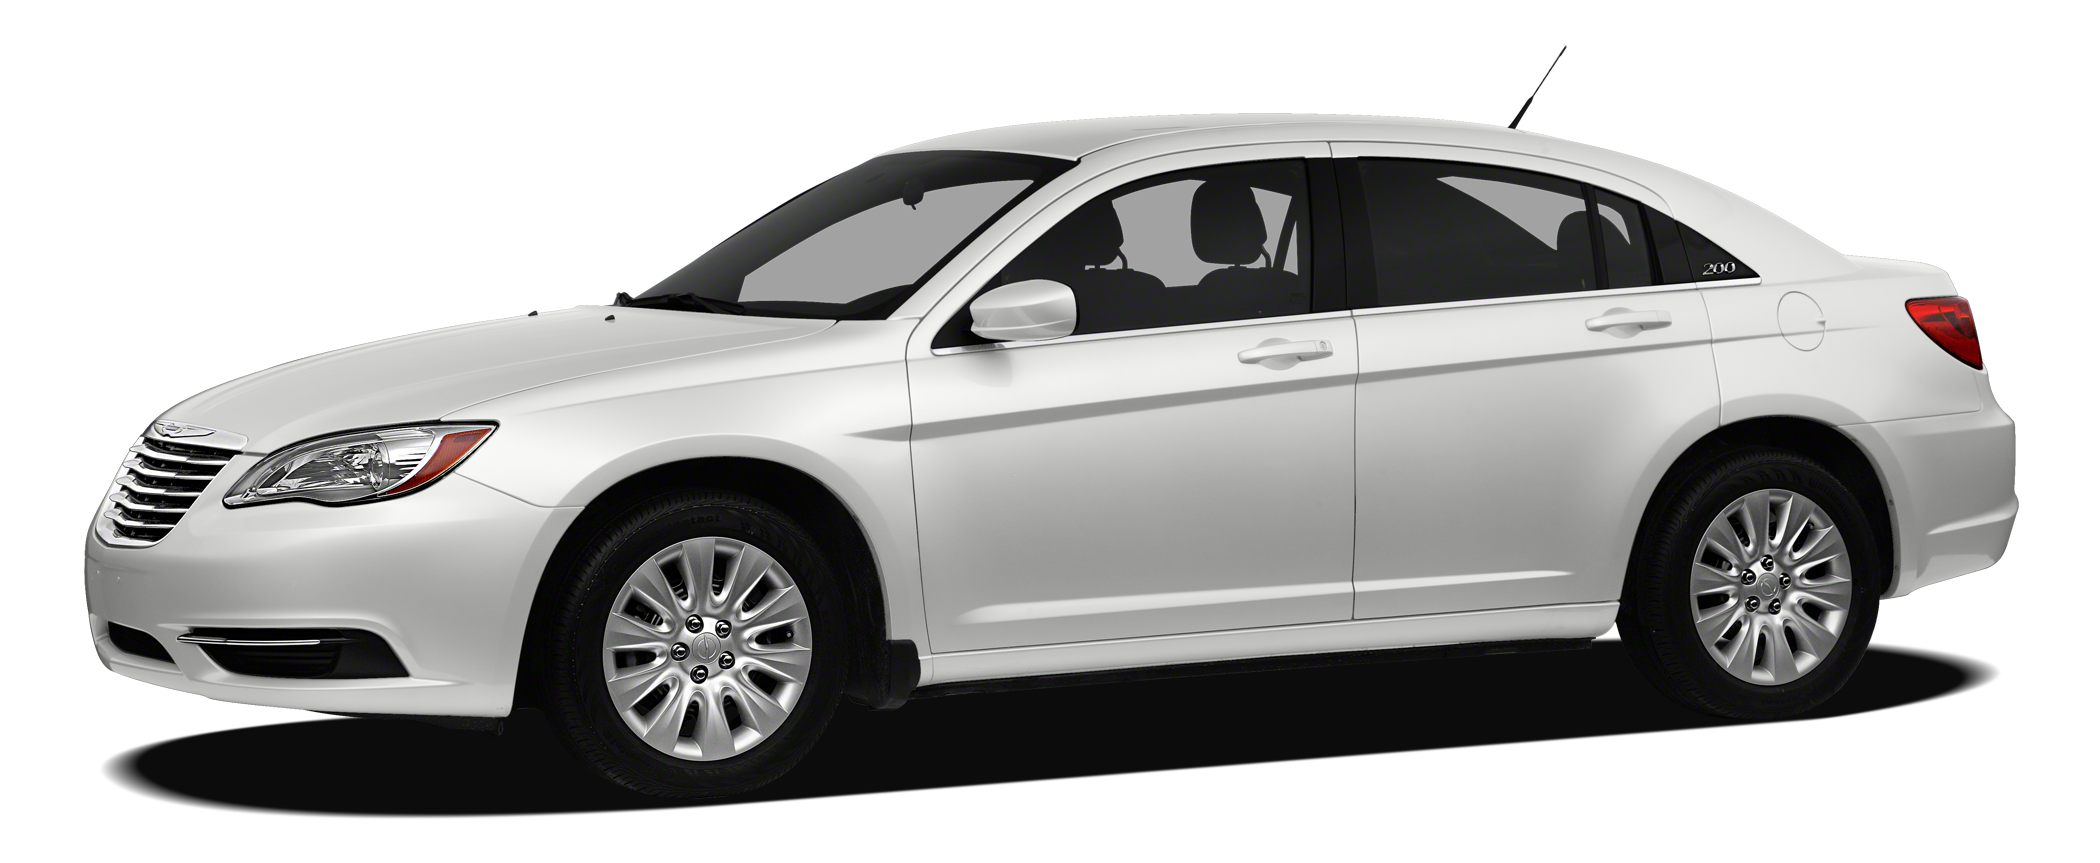 2012 Chrysler 200 Touring Buy with confidence - local trade in Local car we know where it comes